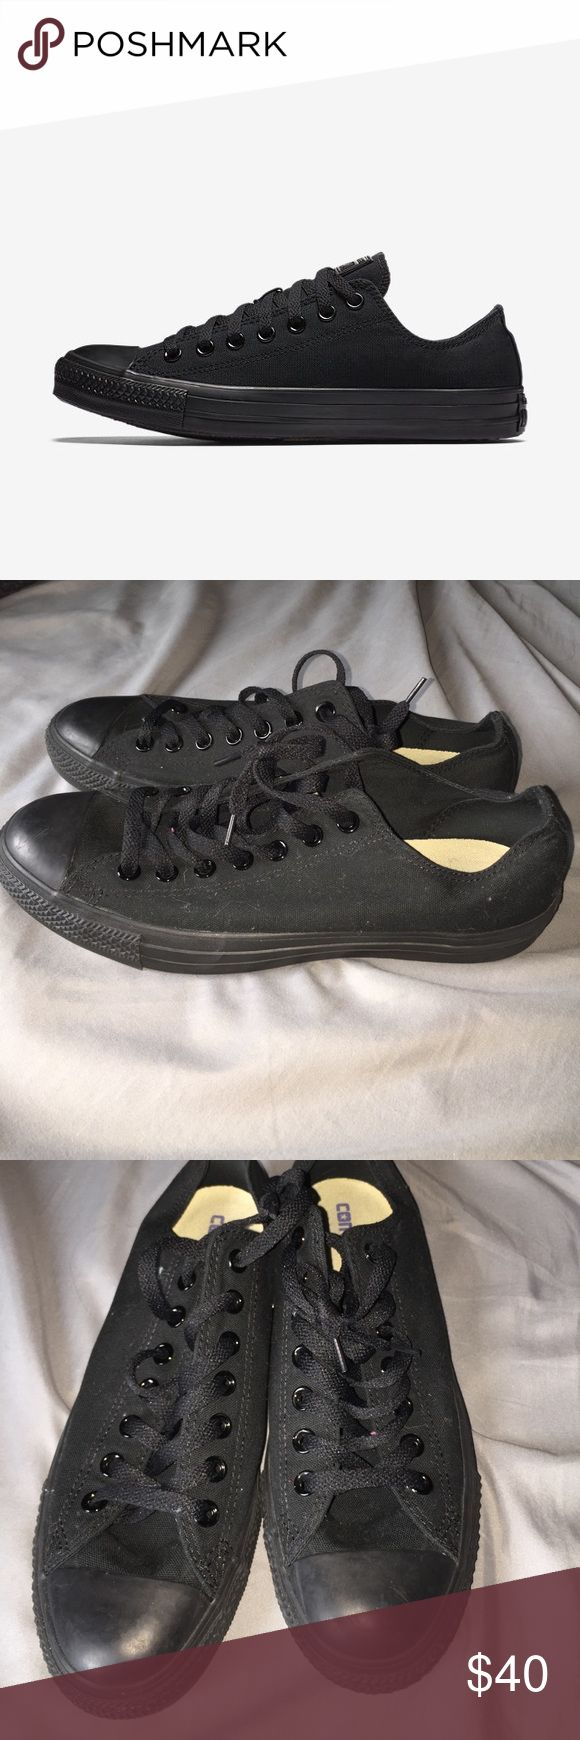 Black Low top Converse Worn 1x!! worn once, perfect condition. all black unisex low top converse. Women's 11, Men's 9 Converse Shoes Sneakers